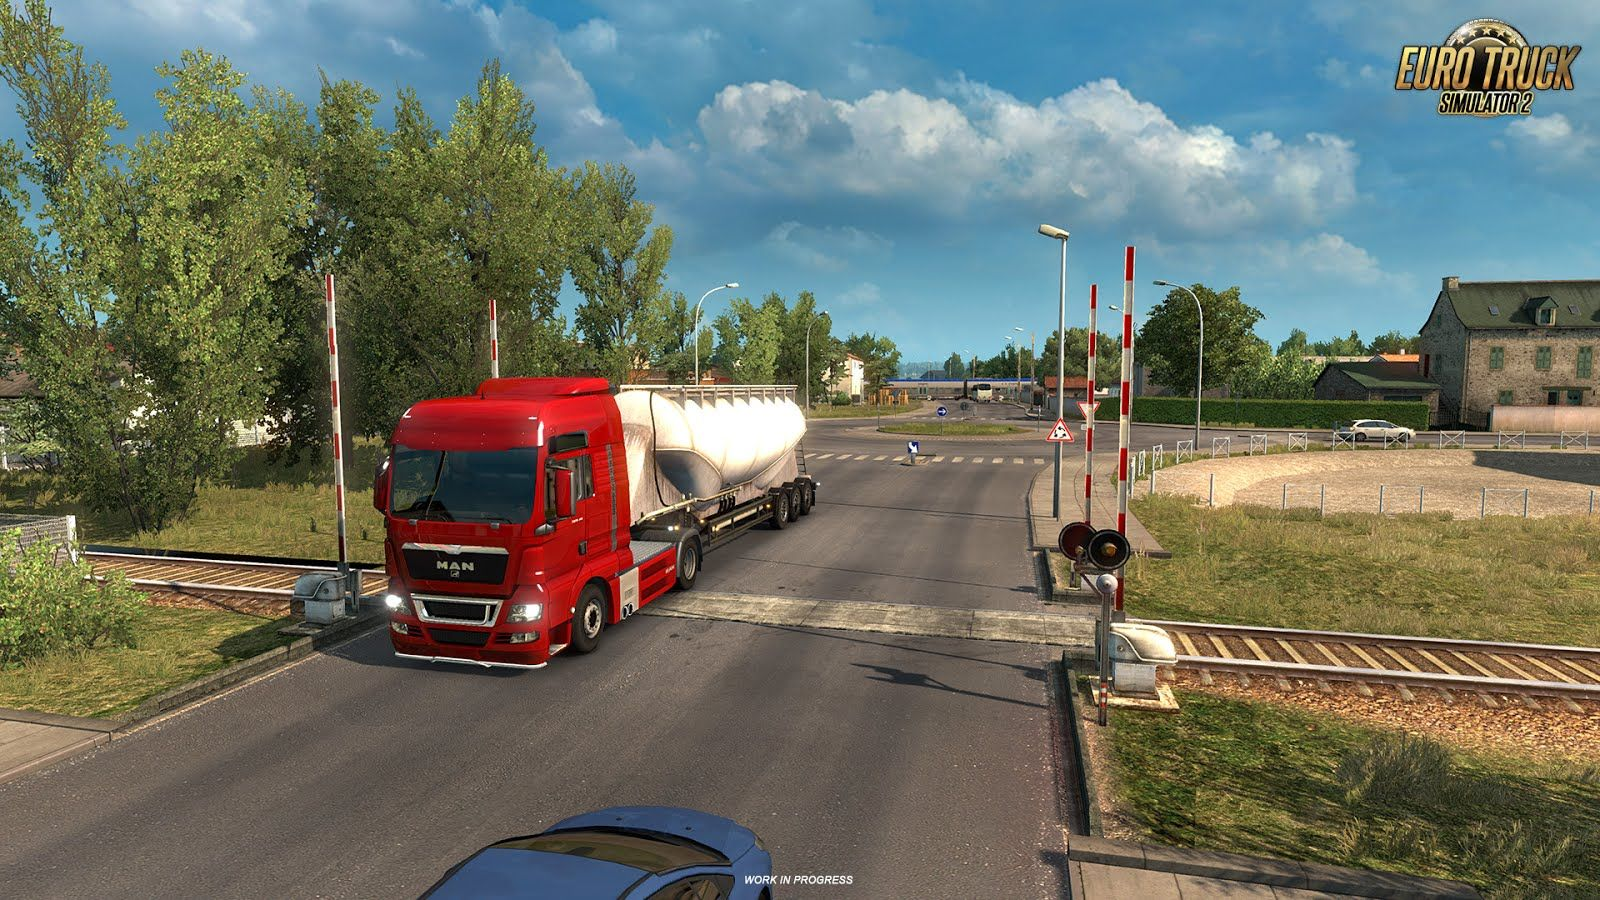 Мероприятие World Of Trucks: торговые связи с Францией